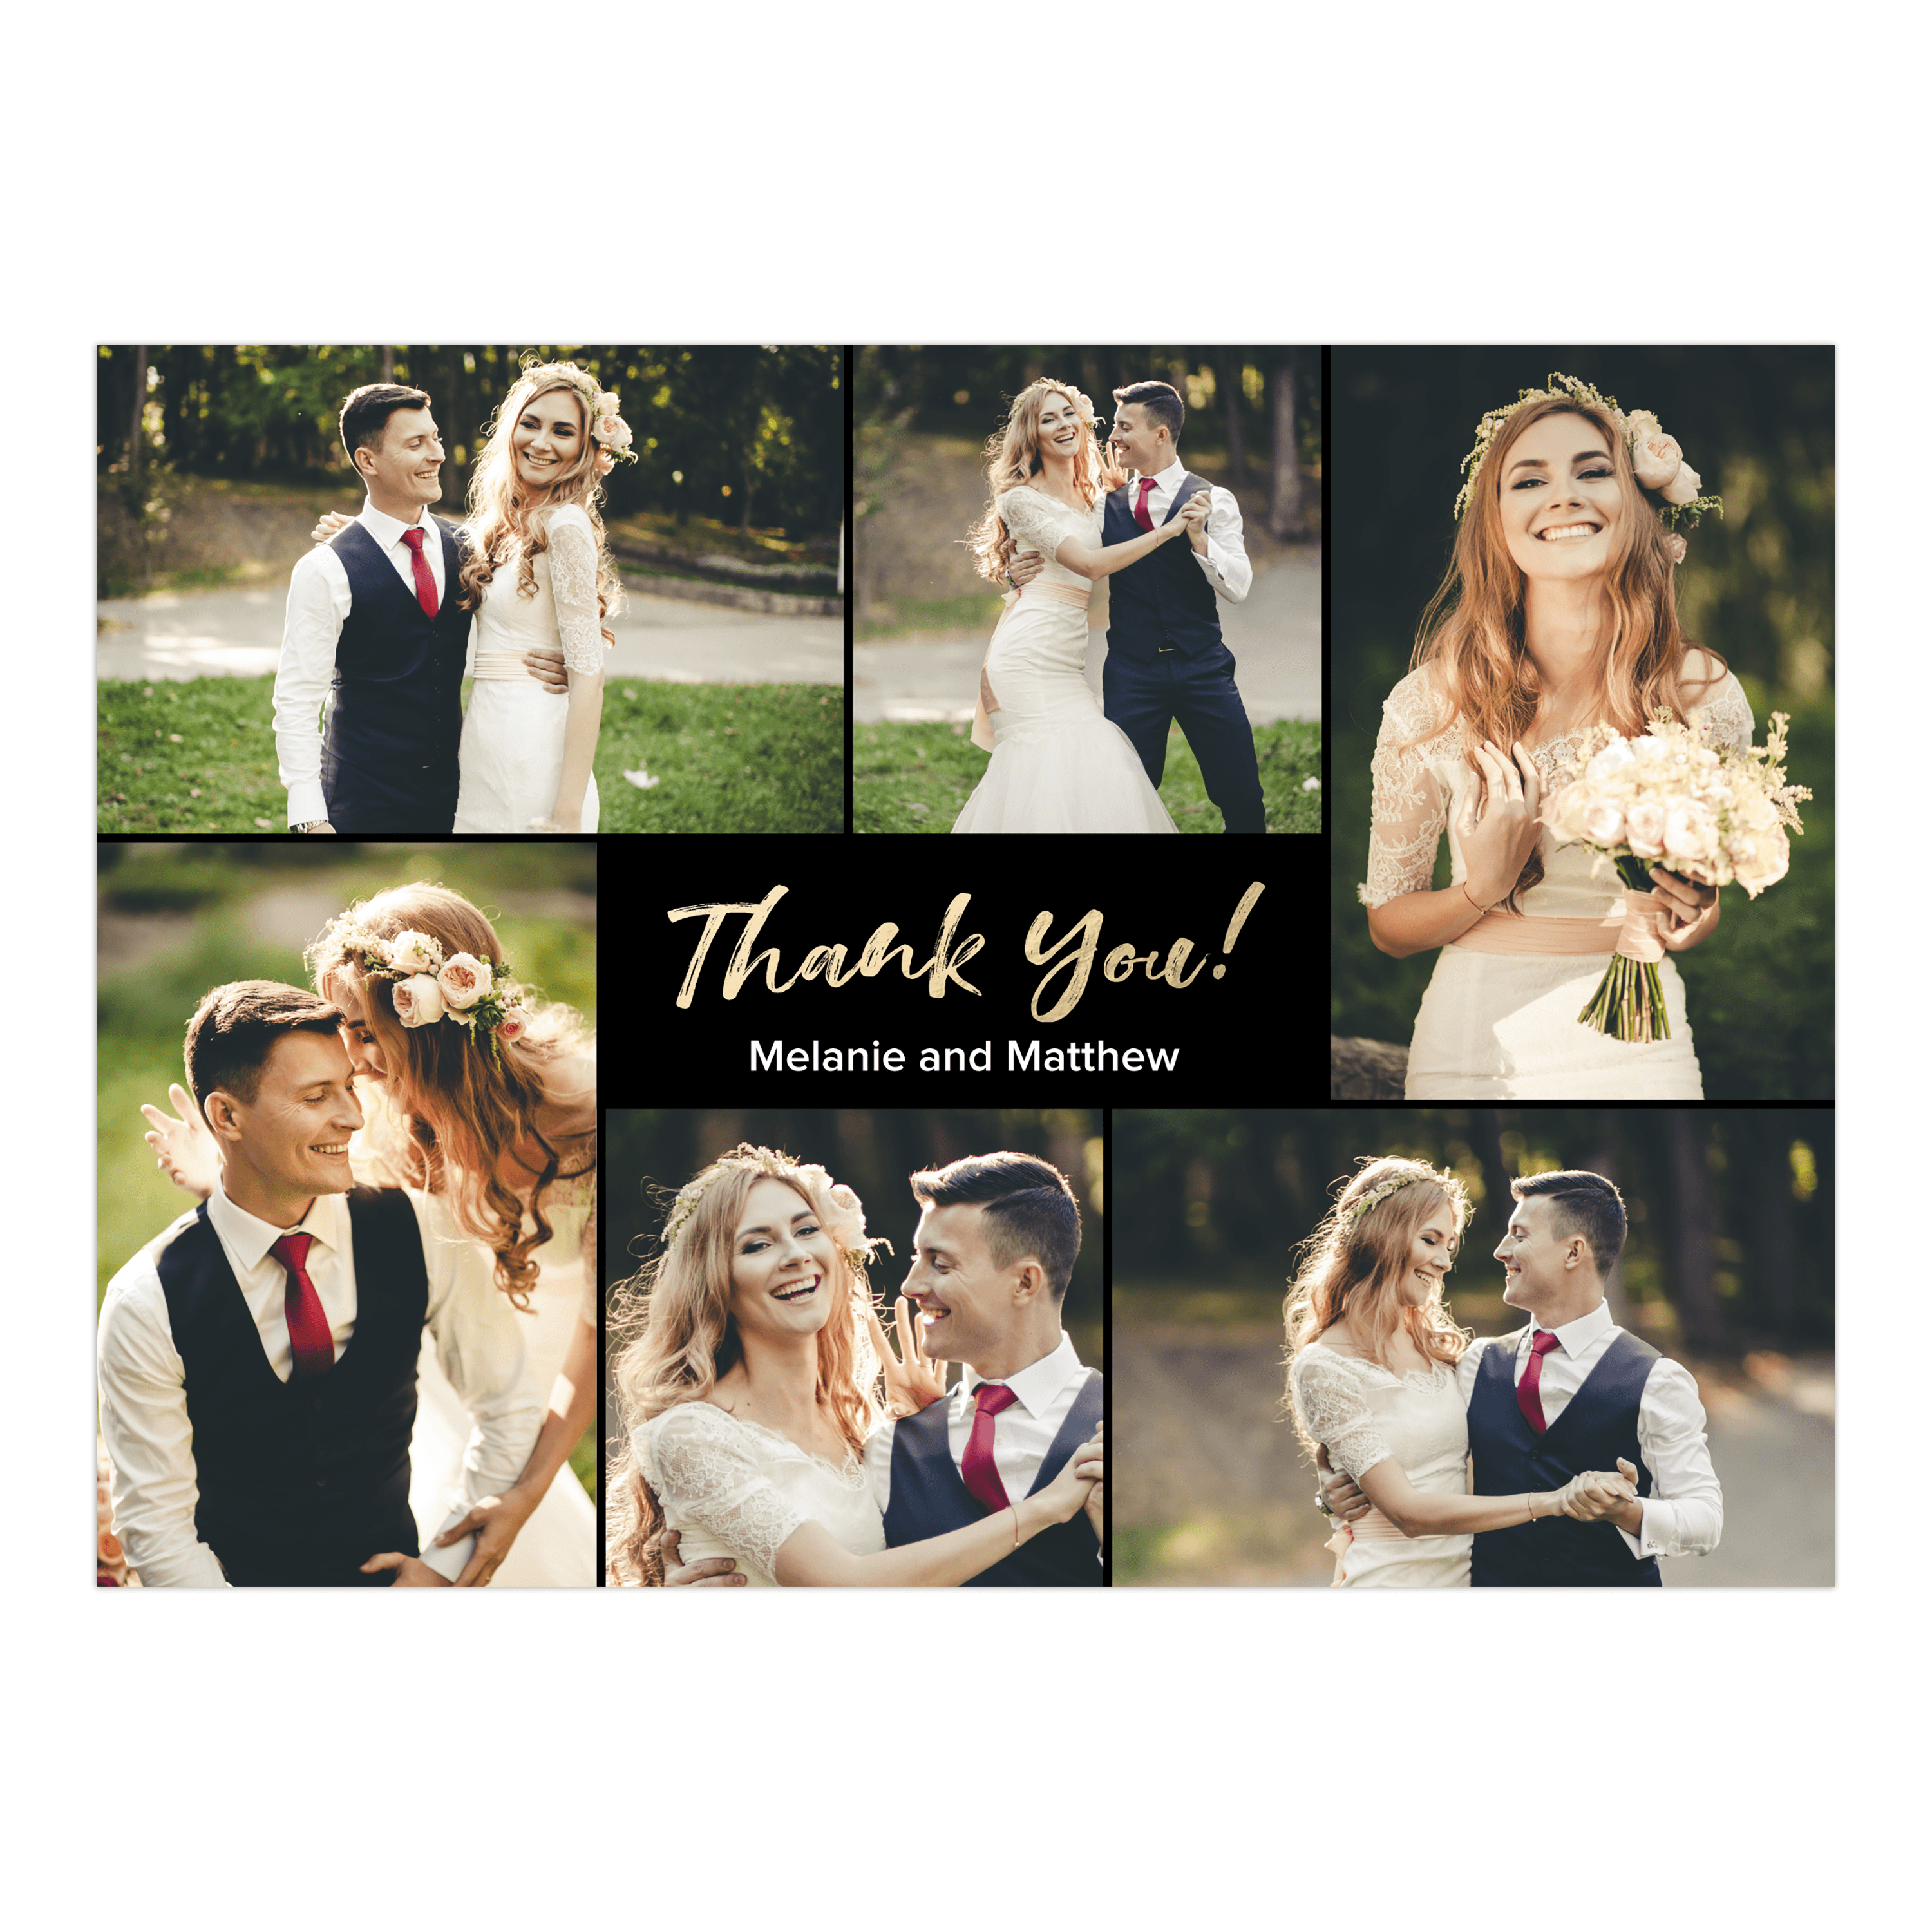 Personalized Wedding Thank You Card - Classic Love & Thanks - 5 x 7 Flat